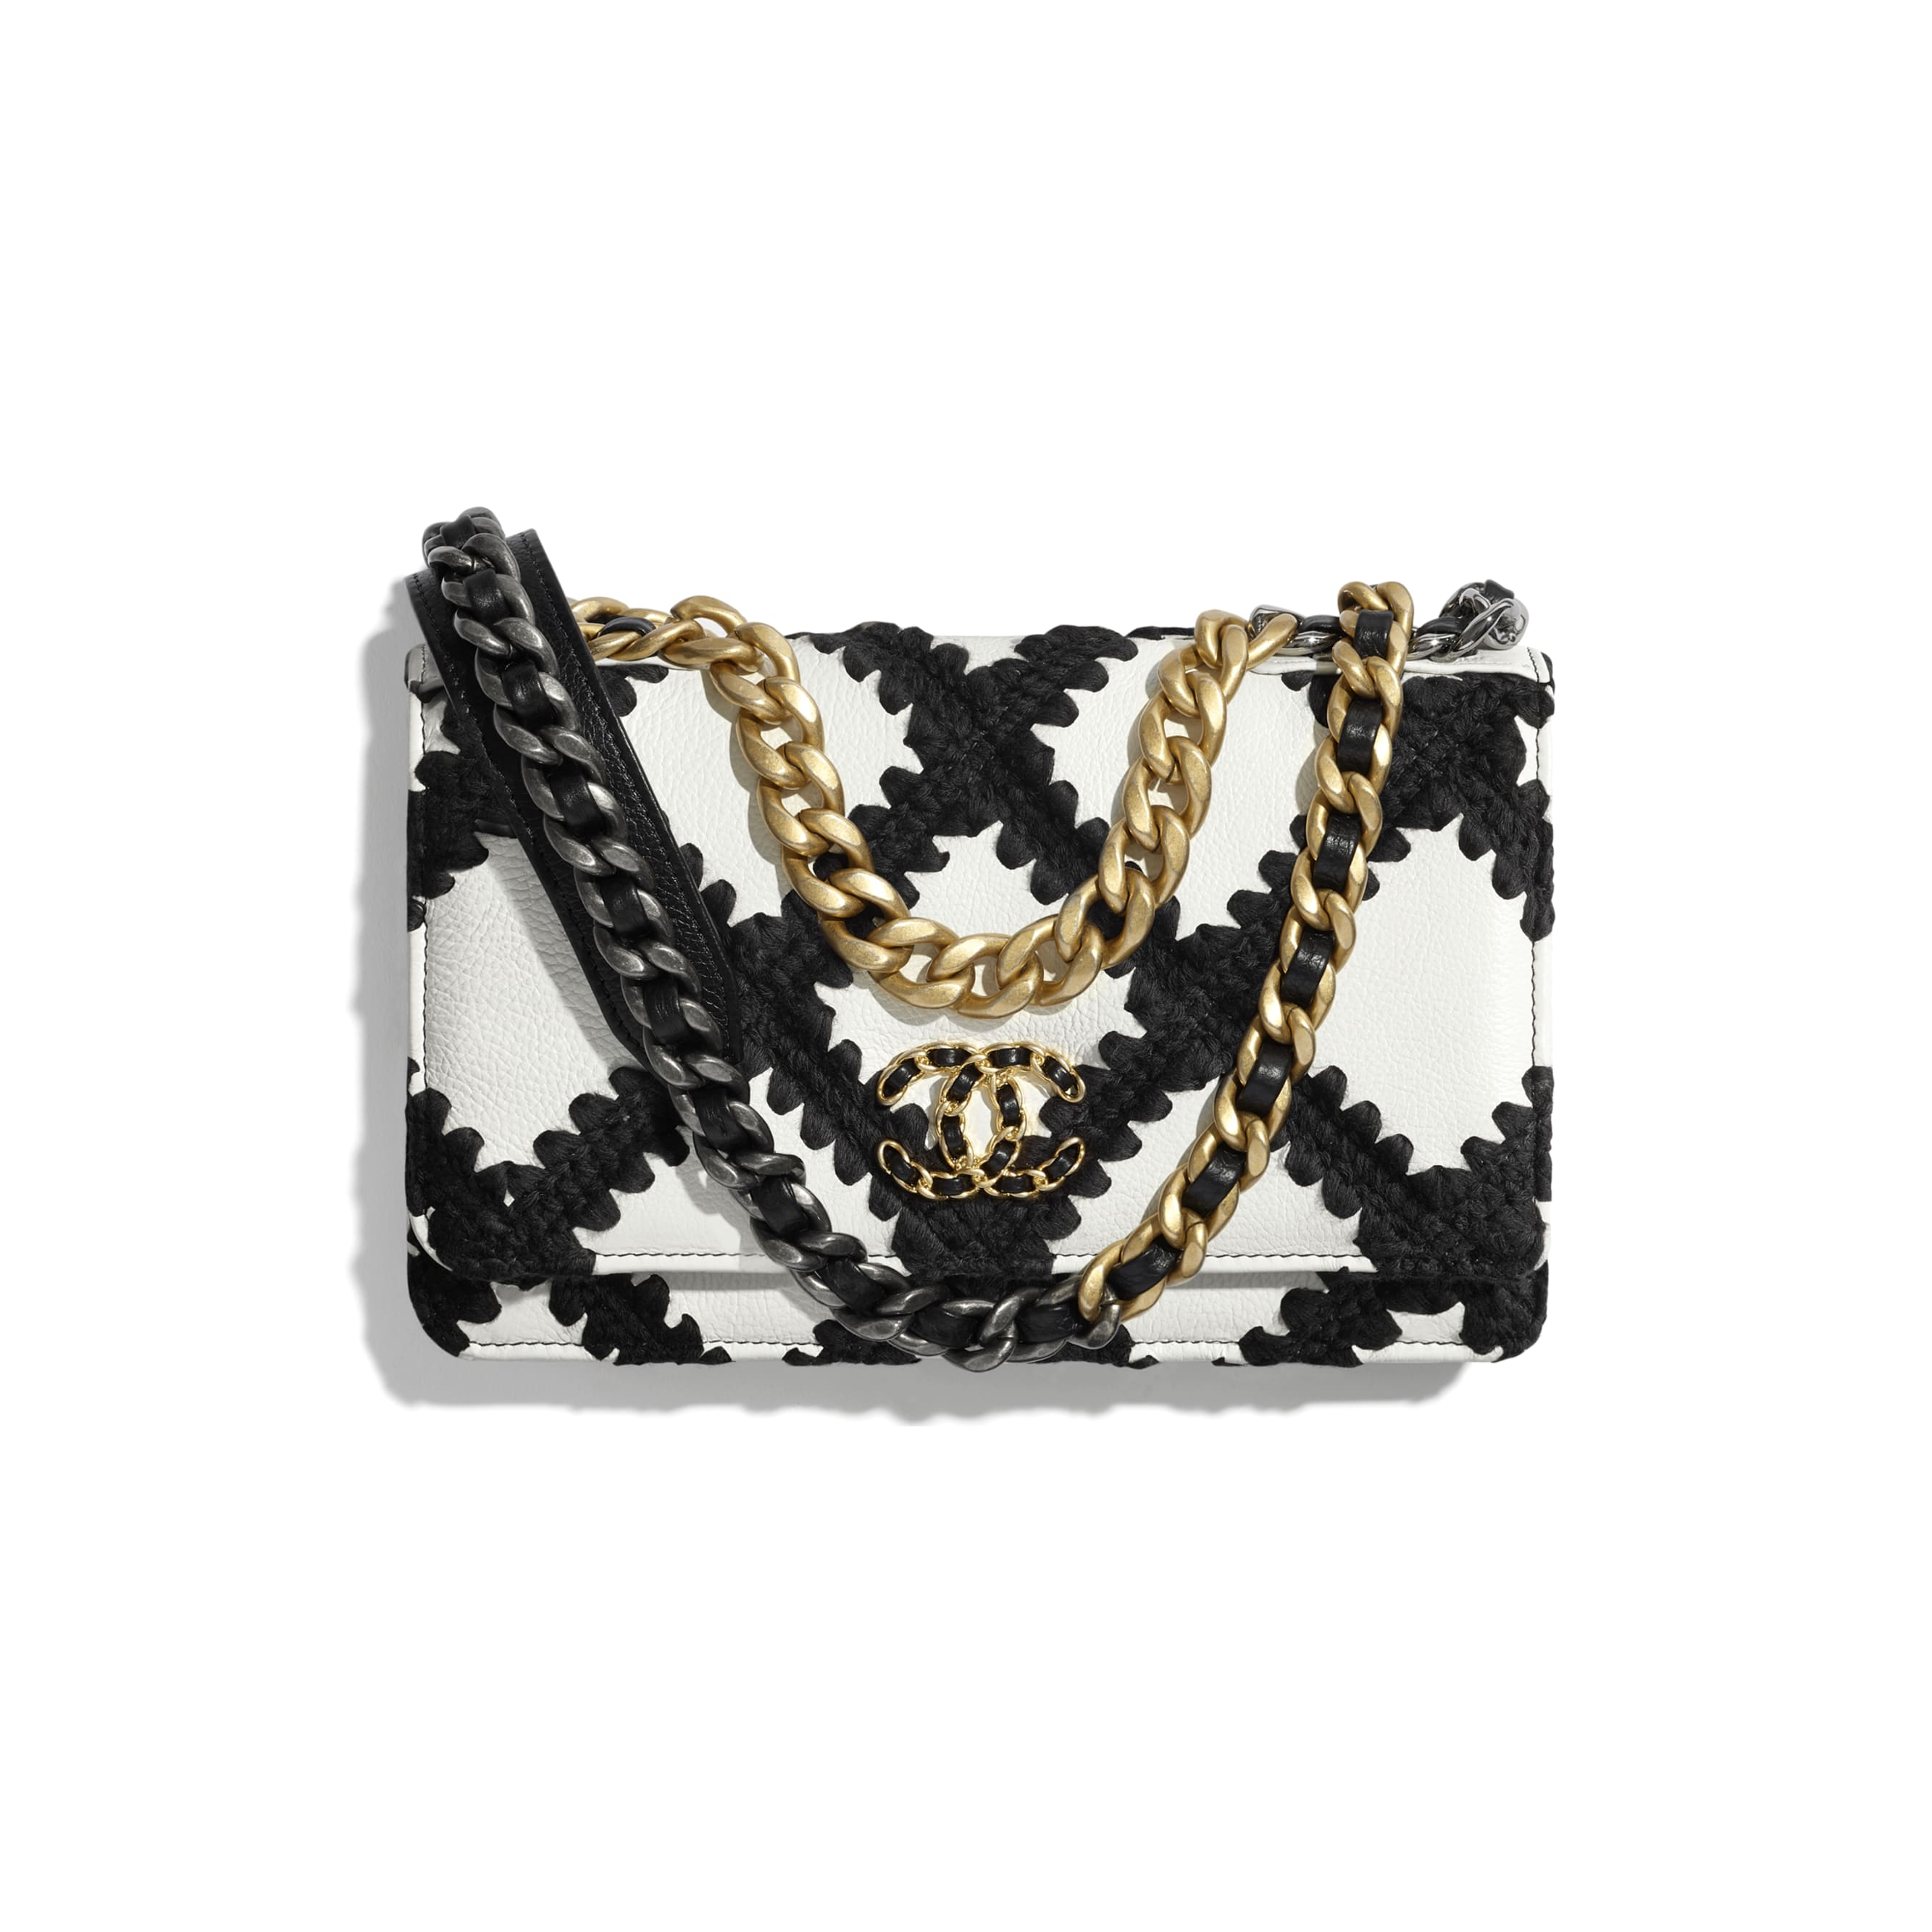 CHANEL 19 Wallet on Chain - White & Black - Calfskin, Crochet, Gold-Tone, Silver-Tone & Ruthenium-Finish Metal - CHANEL - Default view - see standard sized version